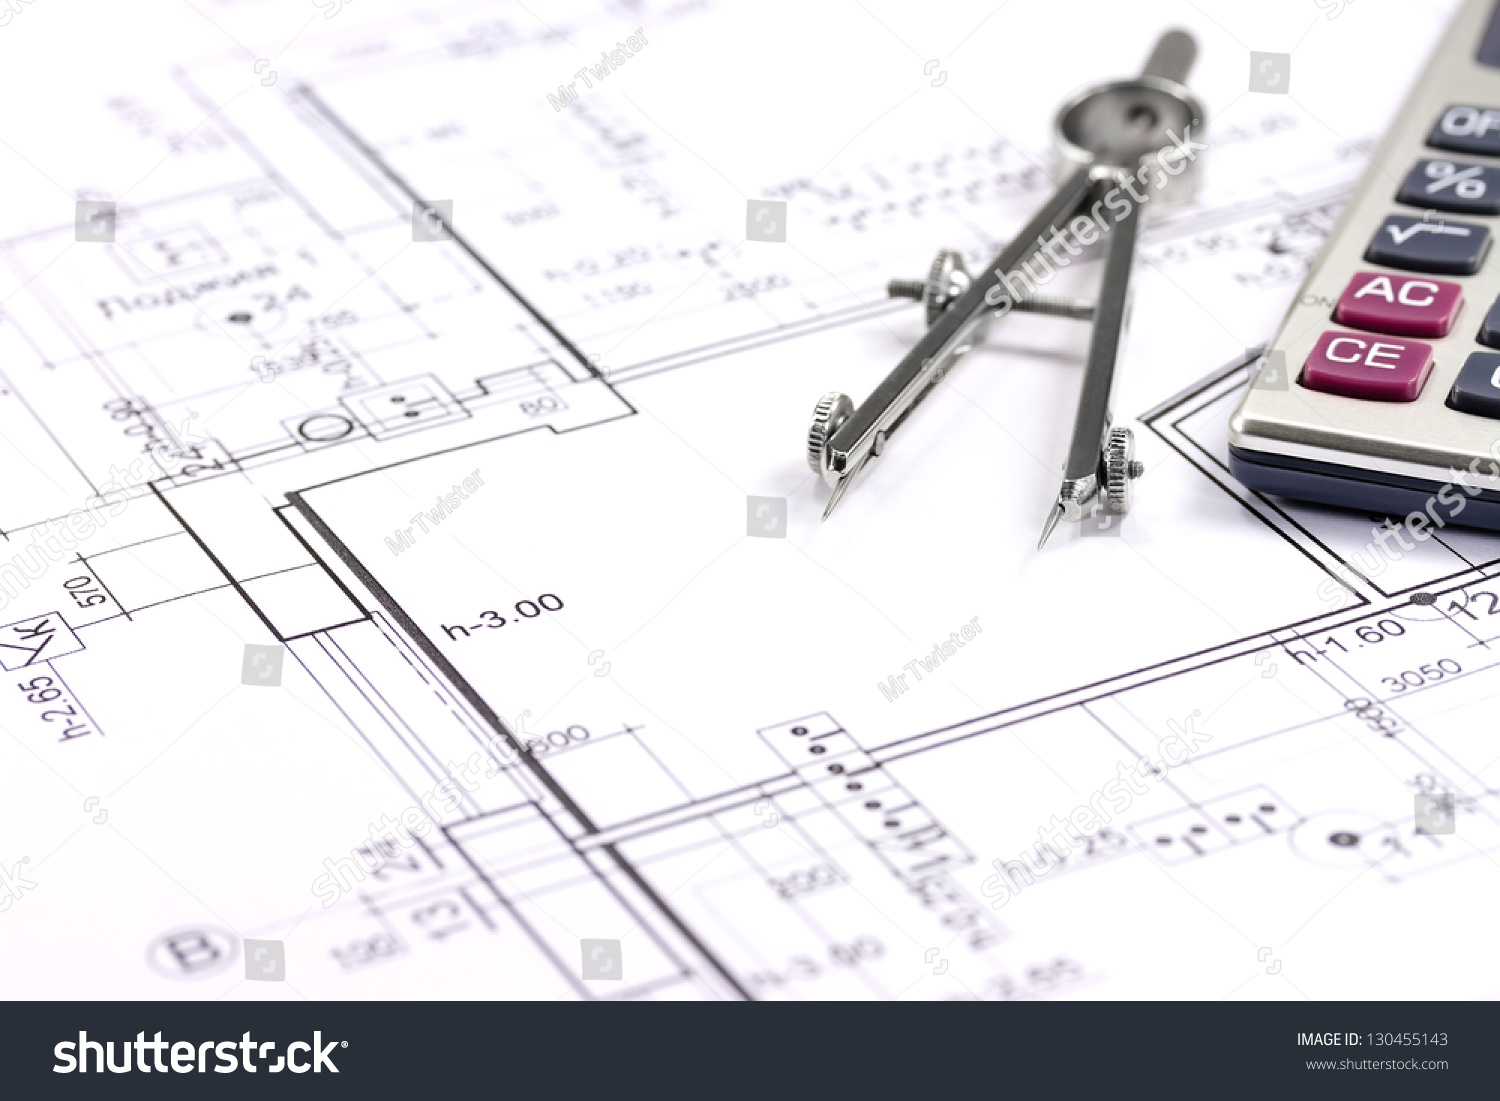 Architectural Blueprints Drawing Compass Calculator Stock